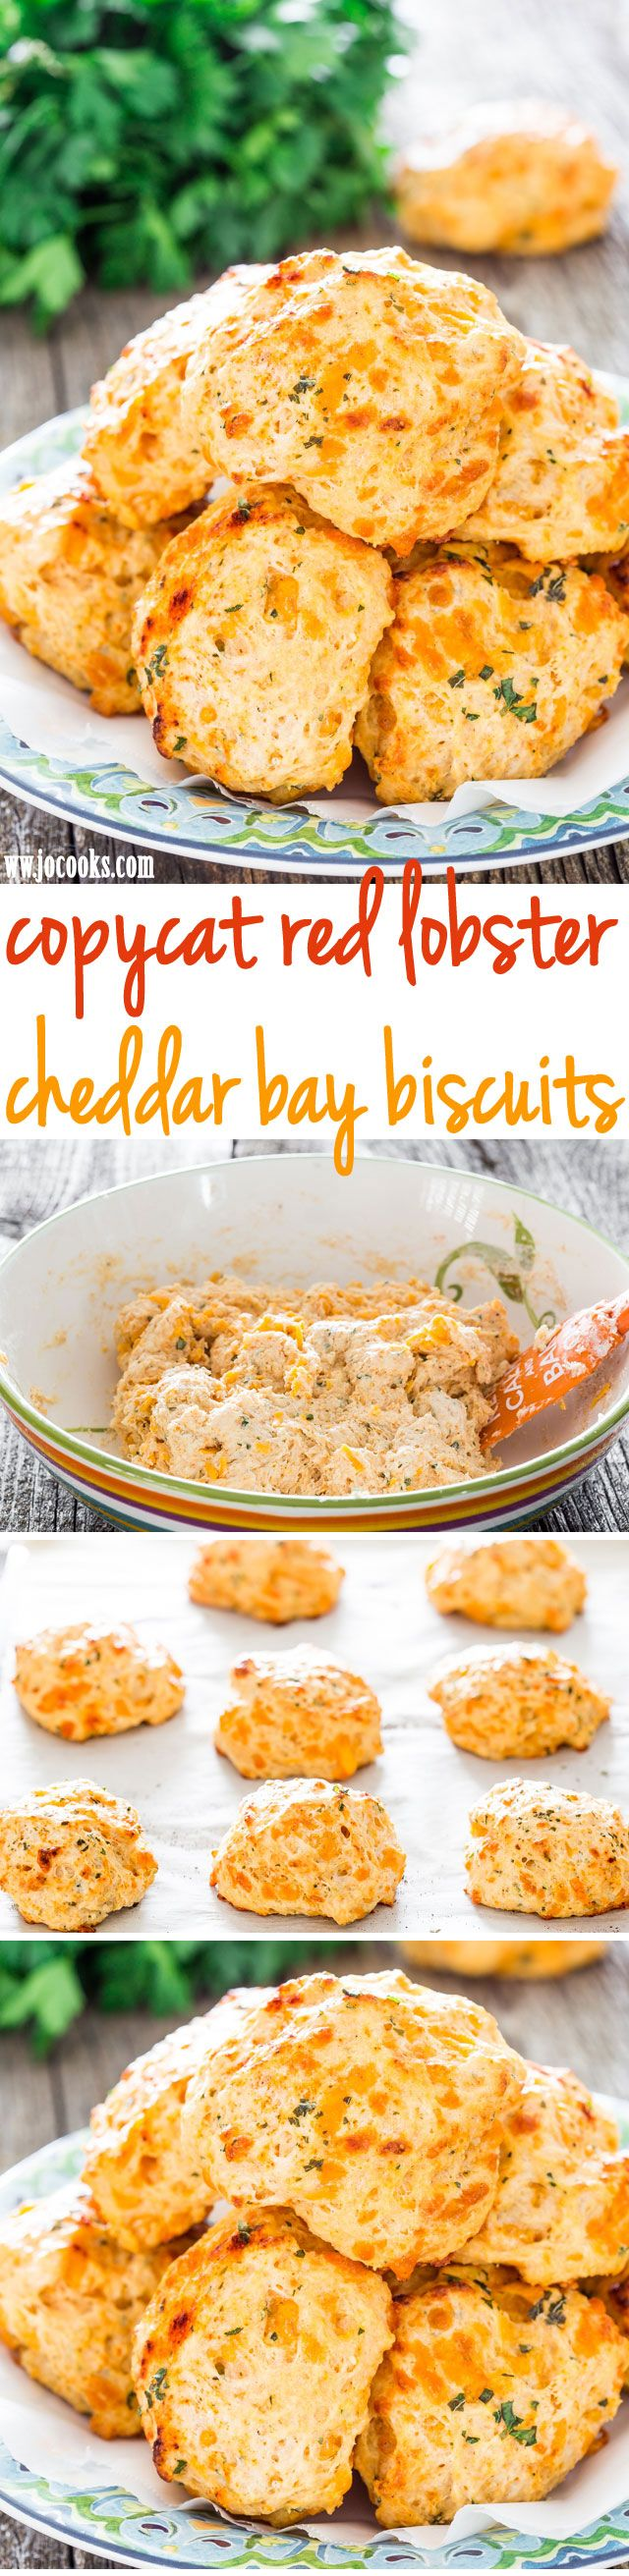 Copycat Red Lobster Cheddar Bay Biscuits - you can be enjoying these savory cheddar bay biscuits in just under 30 minutes. They're easy to make and soooo good!